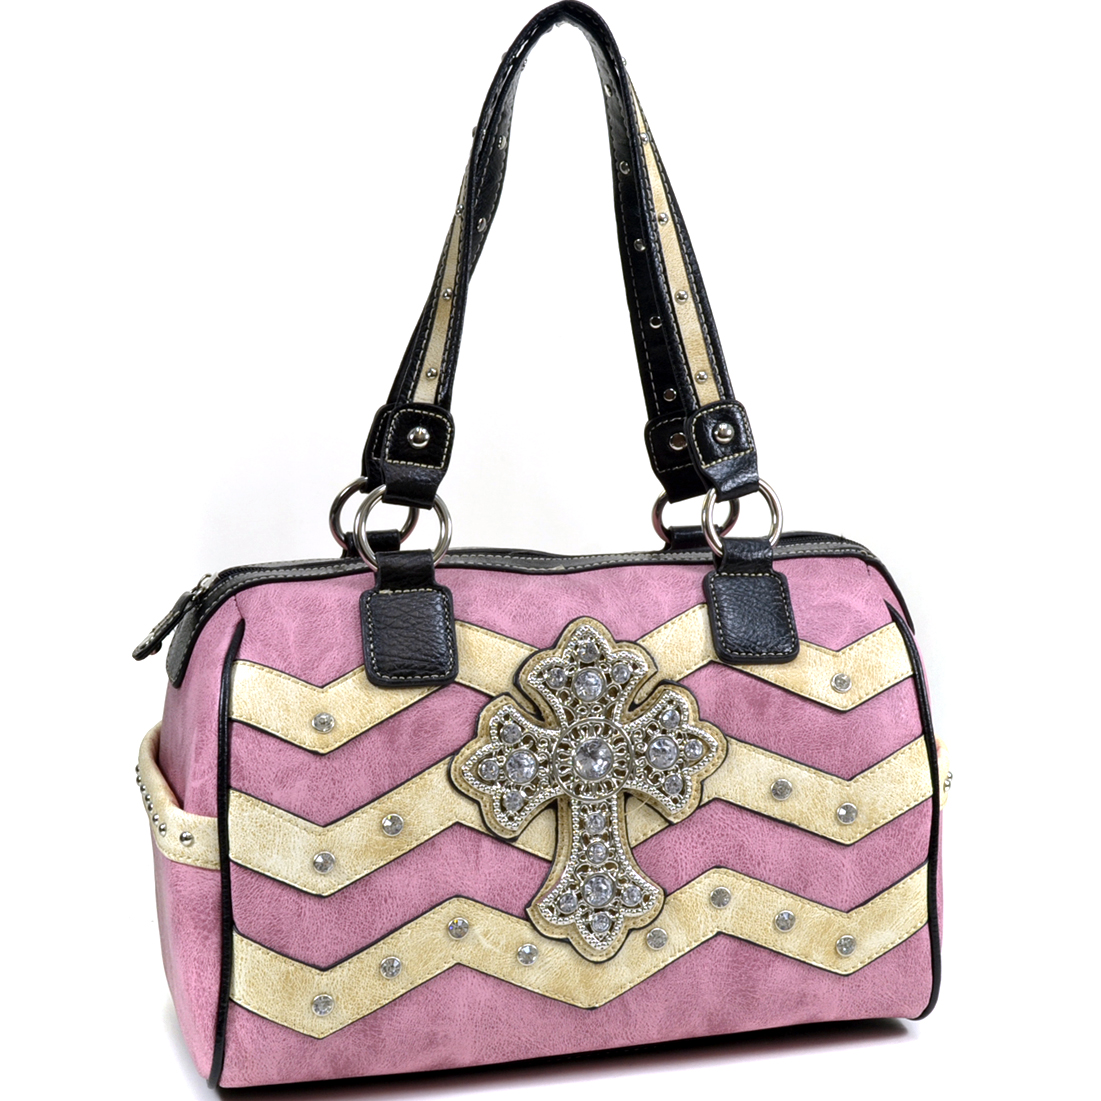 Western Cross and Rhinestone Accented Satchel Bag